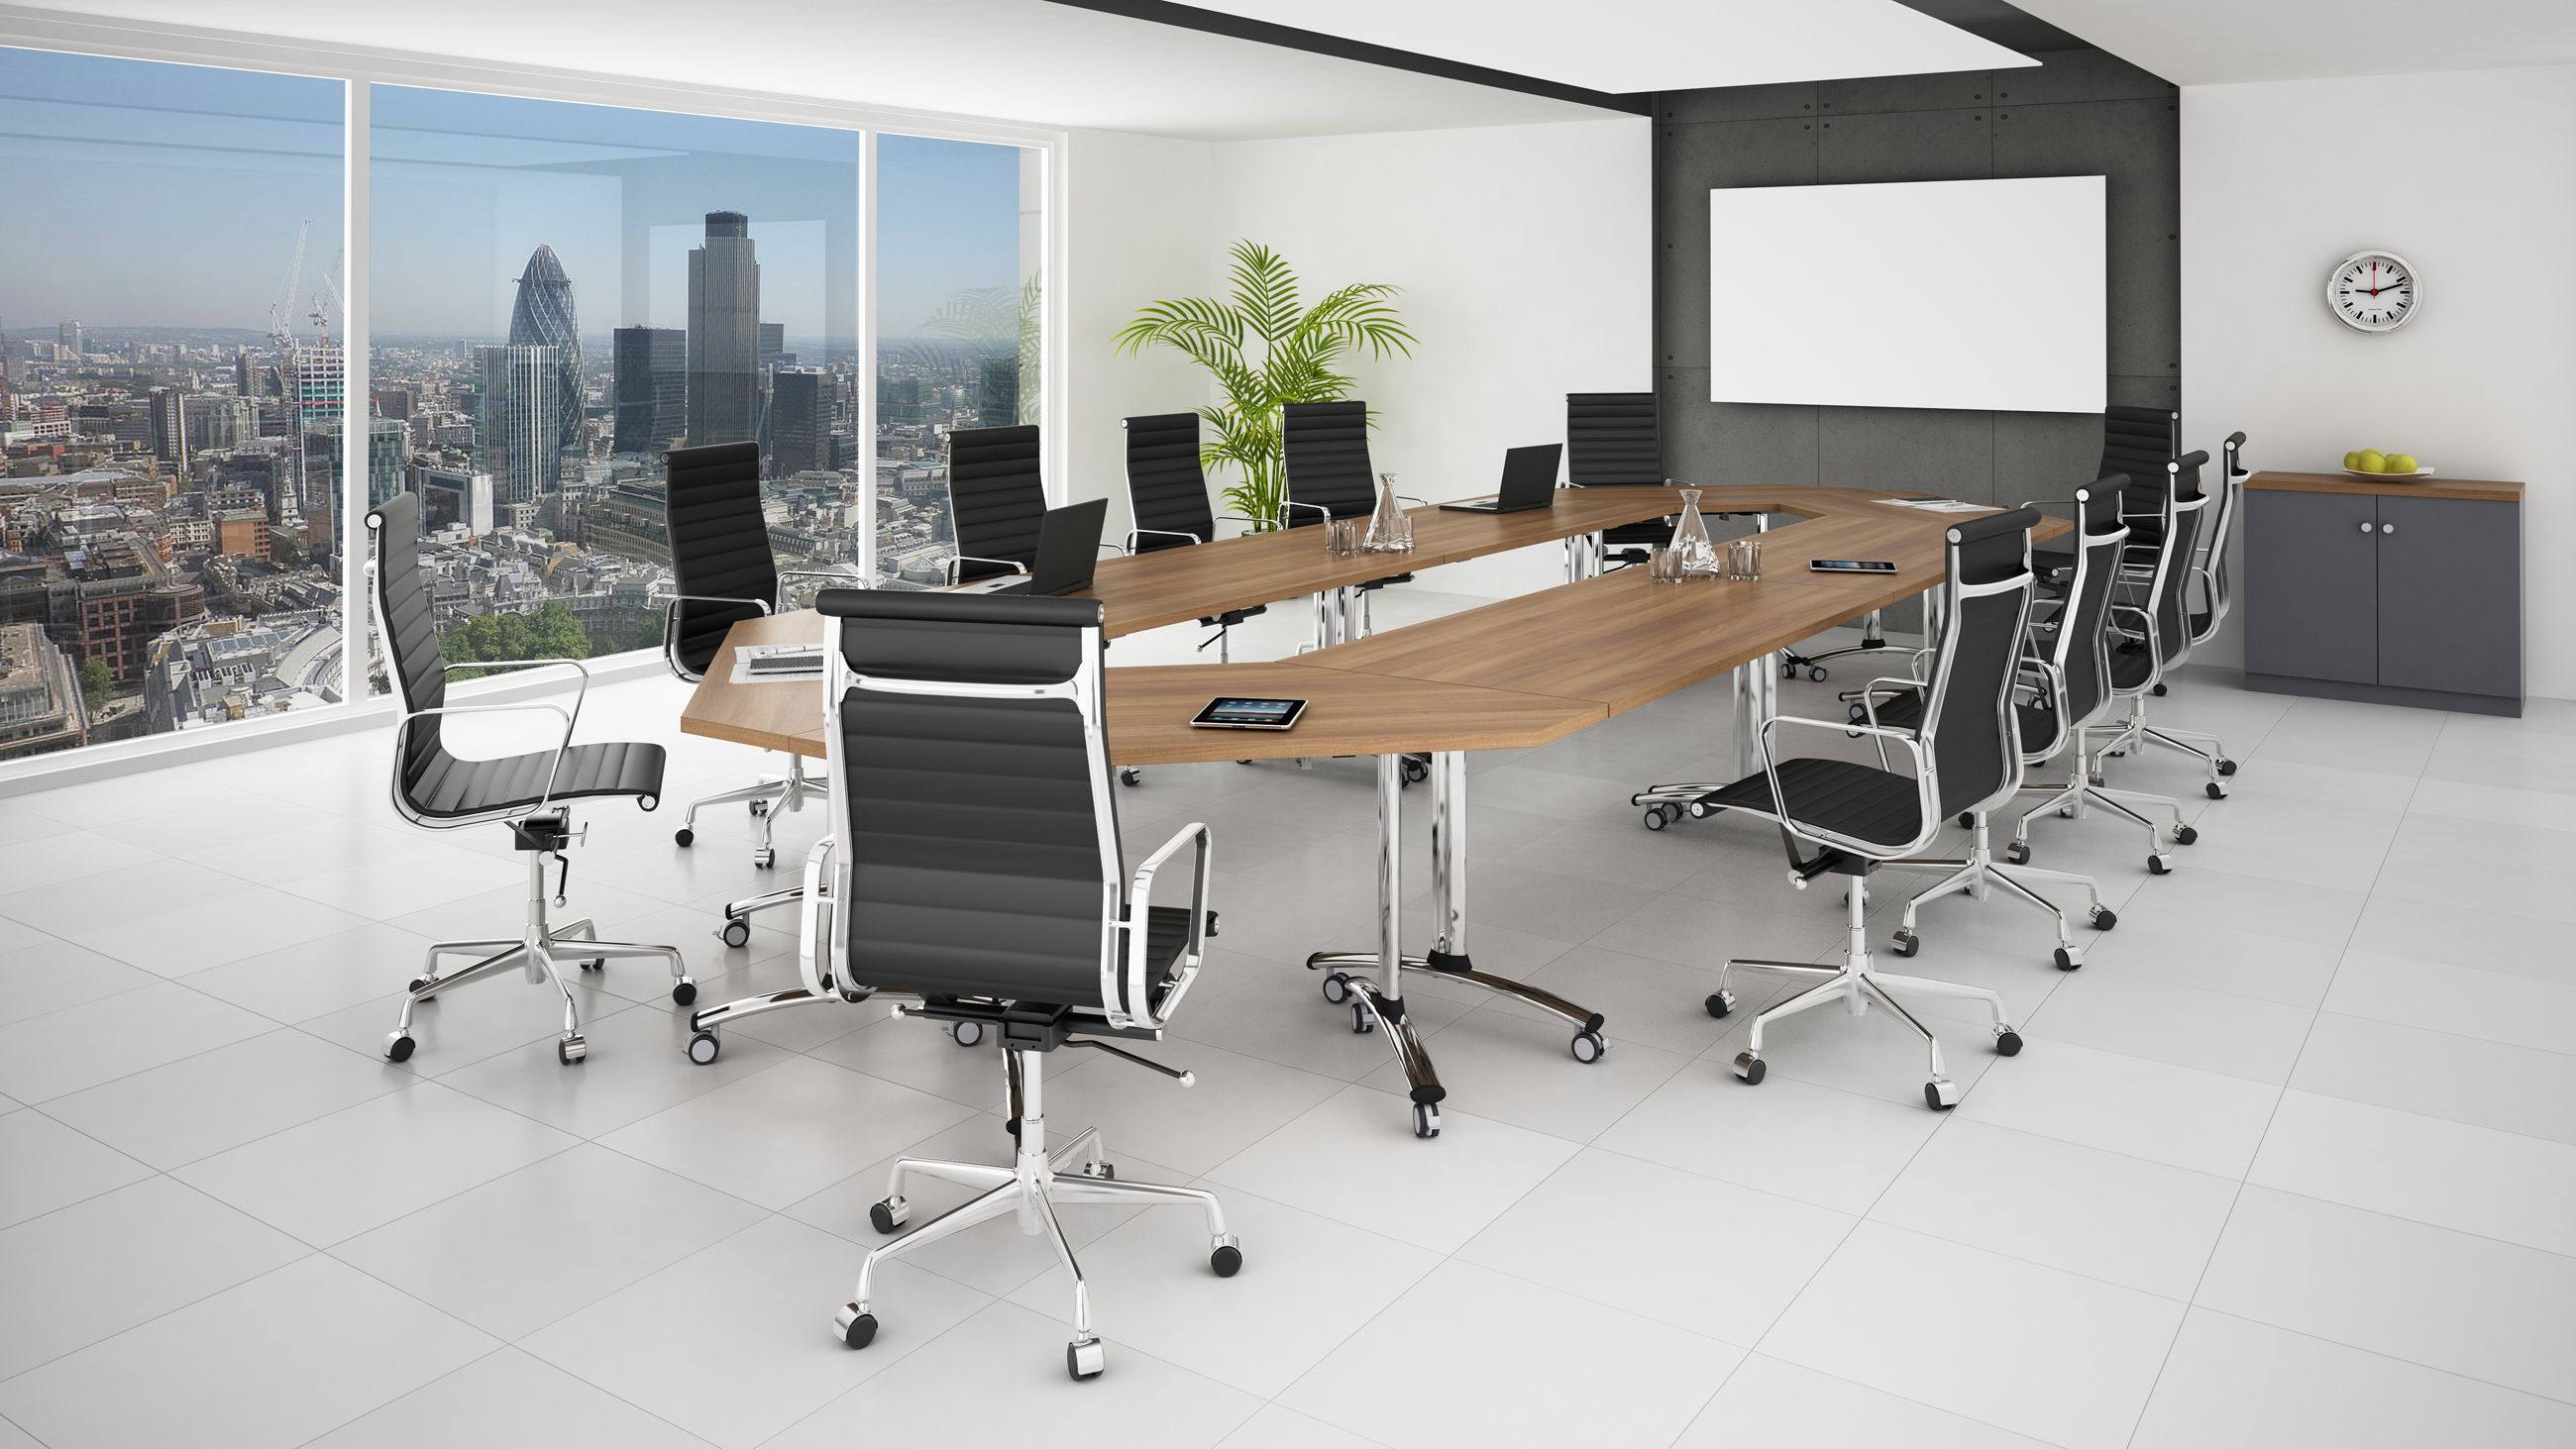 Office furniture office furniture is important part of office environment furniture is - Business office ...